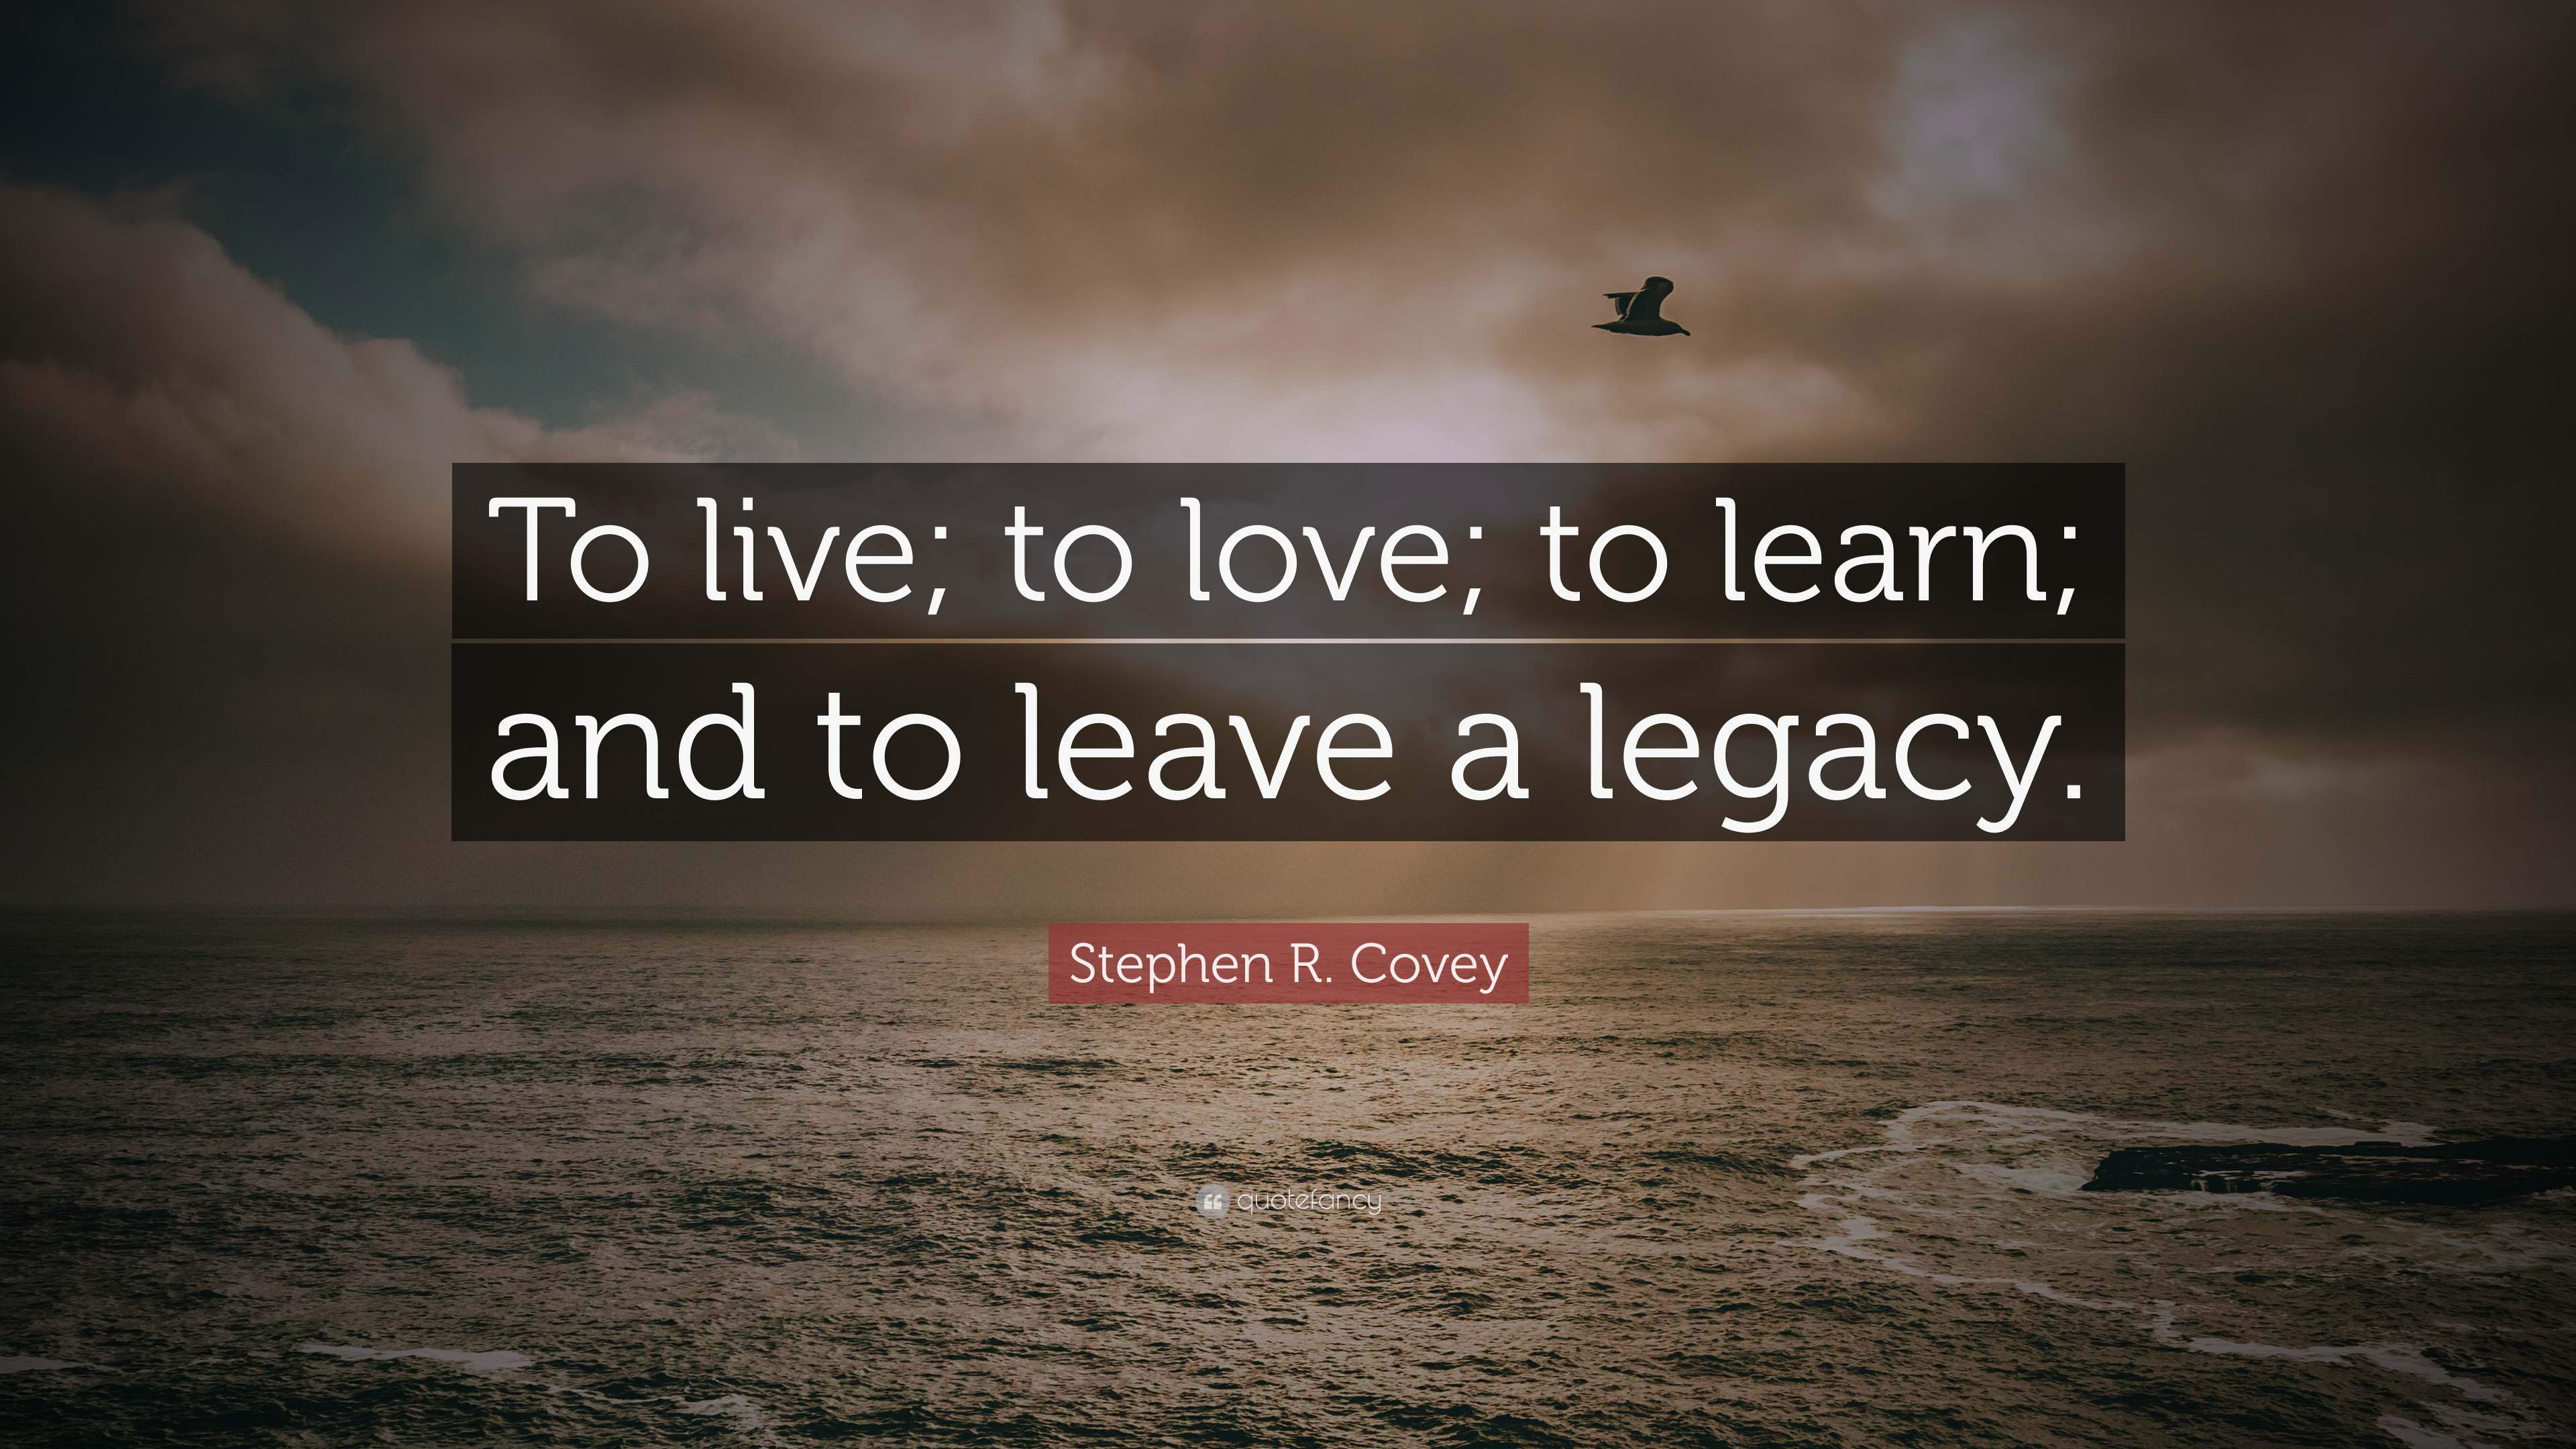 Malcolm X Wallpaper Quotes Stephen R Covey Quote To Live To Love To Learn And